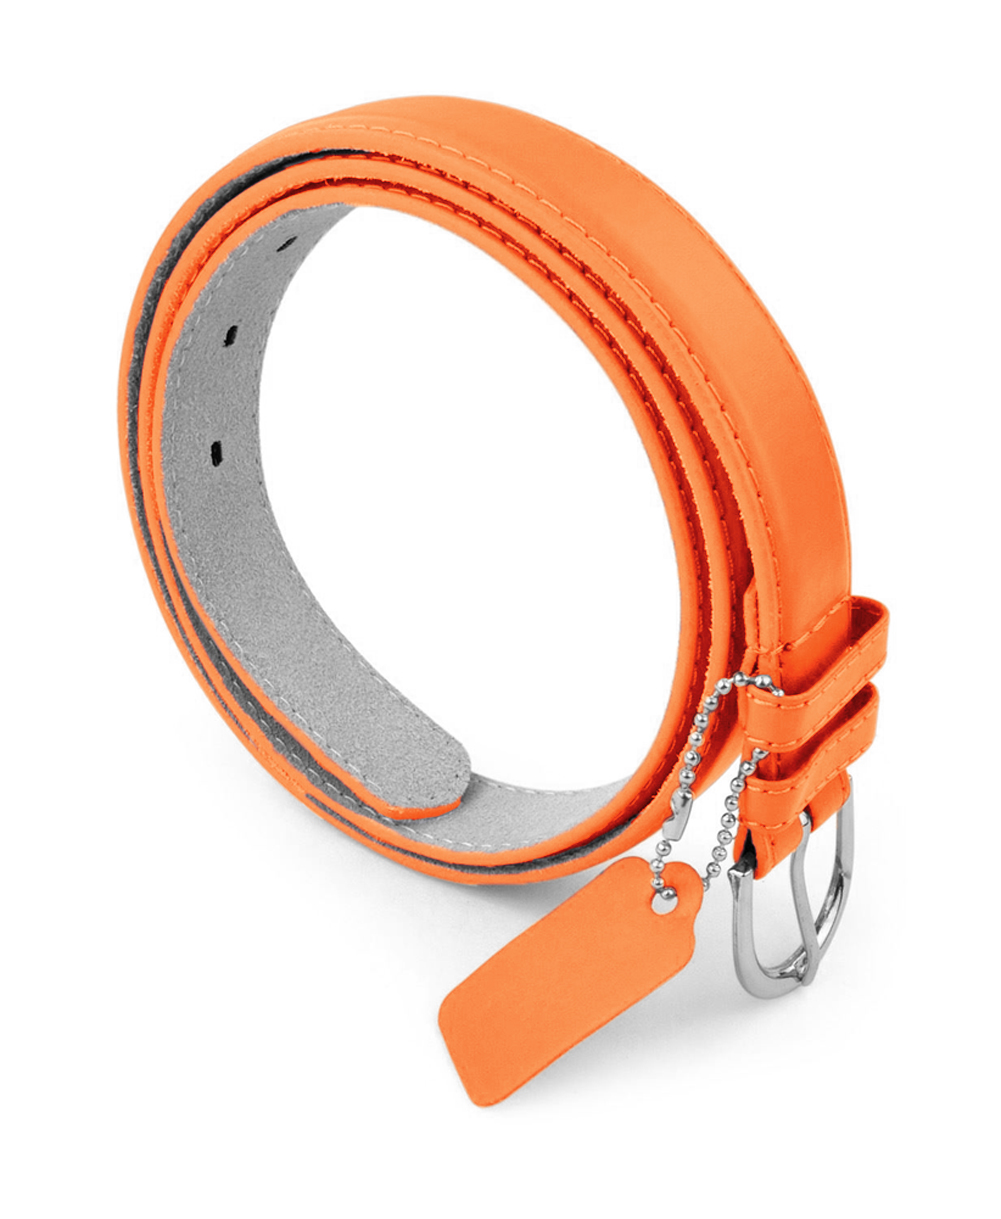 Womens Leather Belt with Silver Polished Round Buckle - Metallic / Neon Colors - PU Leather Belts by Belle Donne - Neon Orange Large